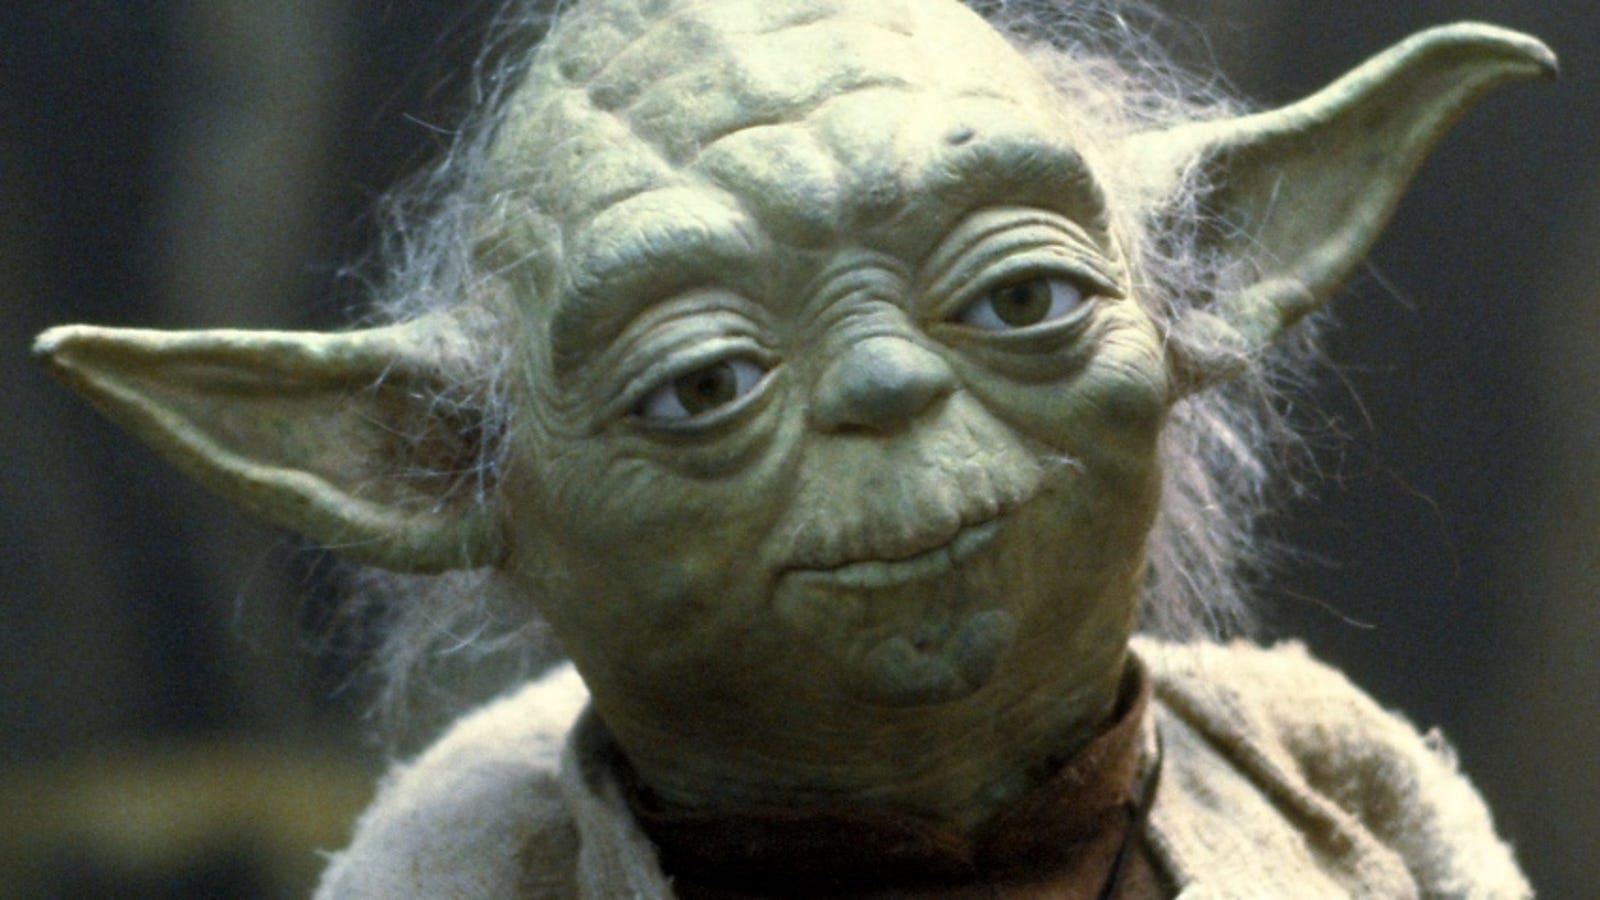 Bad Lip Reading Music Video Exposes Yoda's Biggest Fear, Seagulls